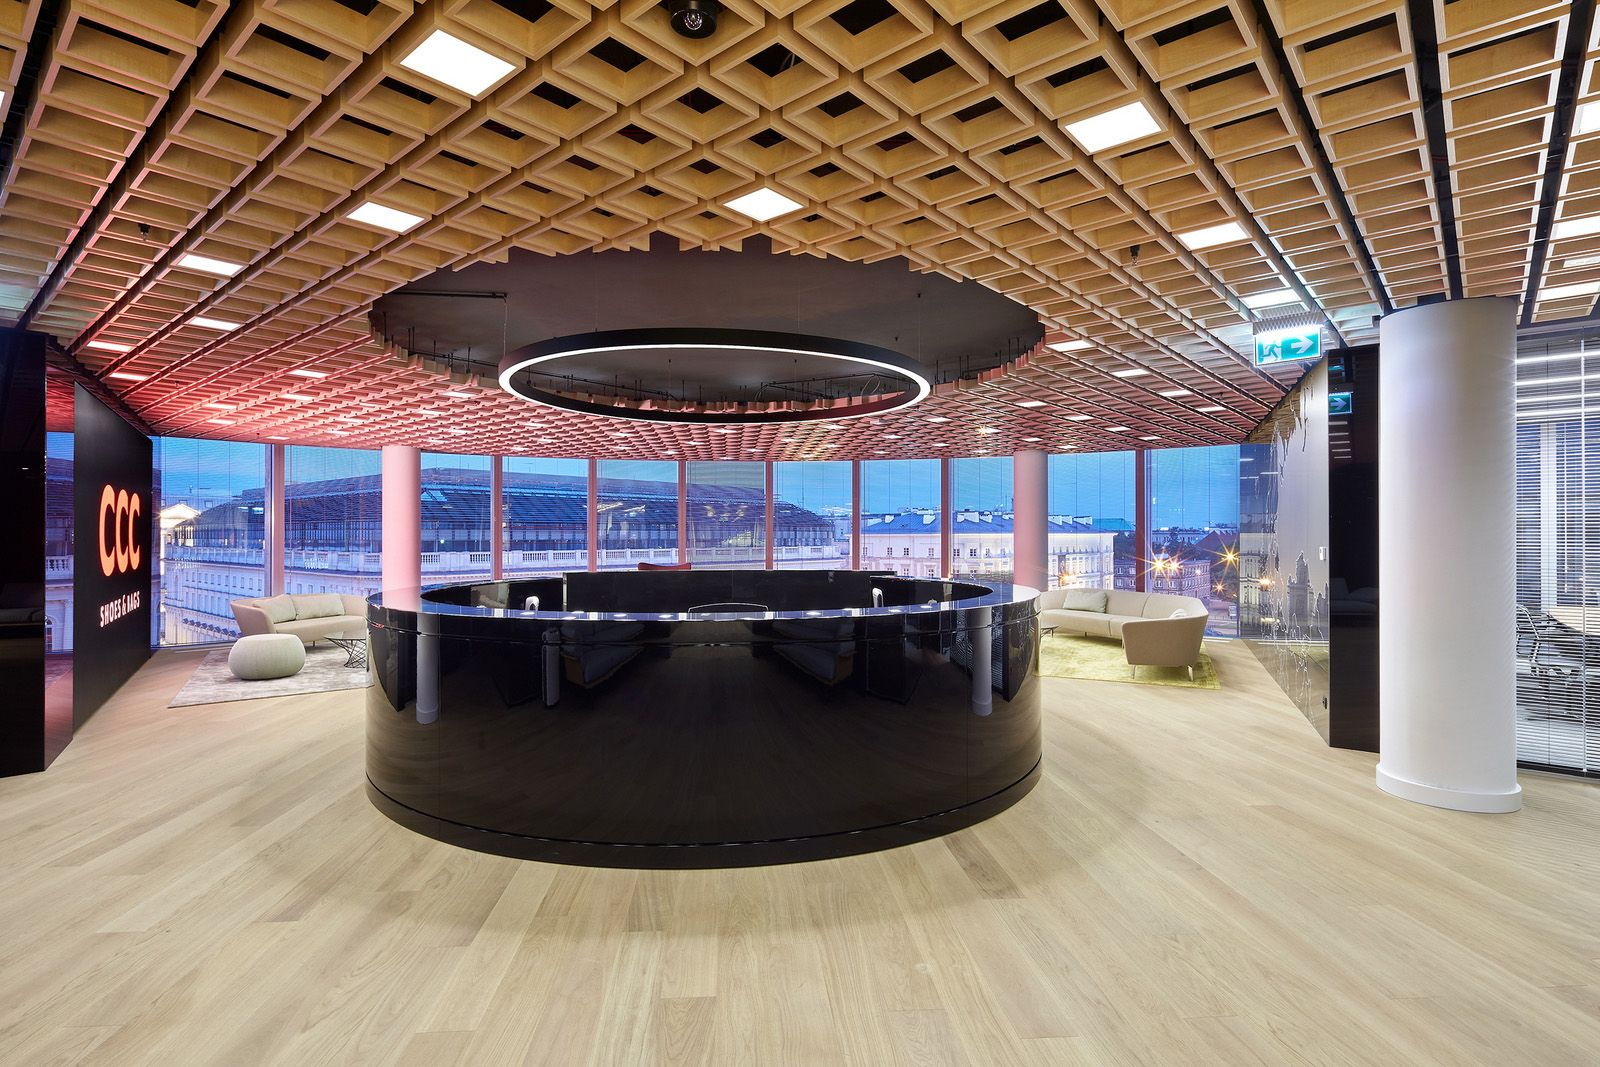 Office tour: ccc shoes and bags offices u2013 warsaw תיקרה pinterest